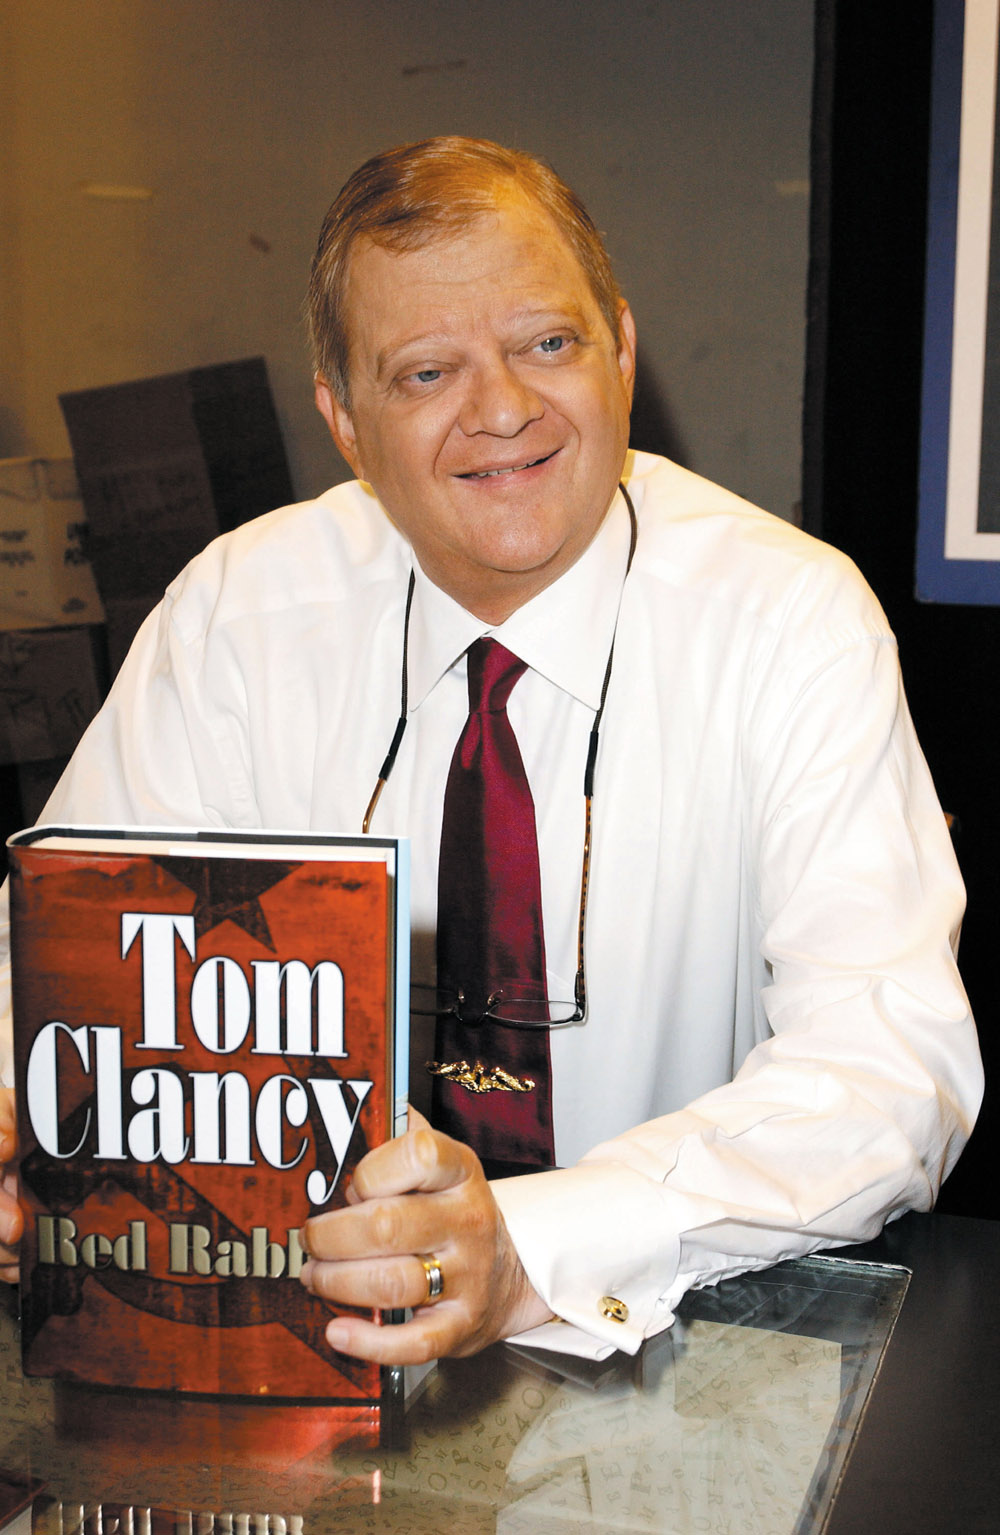 Boys charged with setting fire in Tom Clancy's home